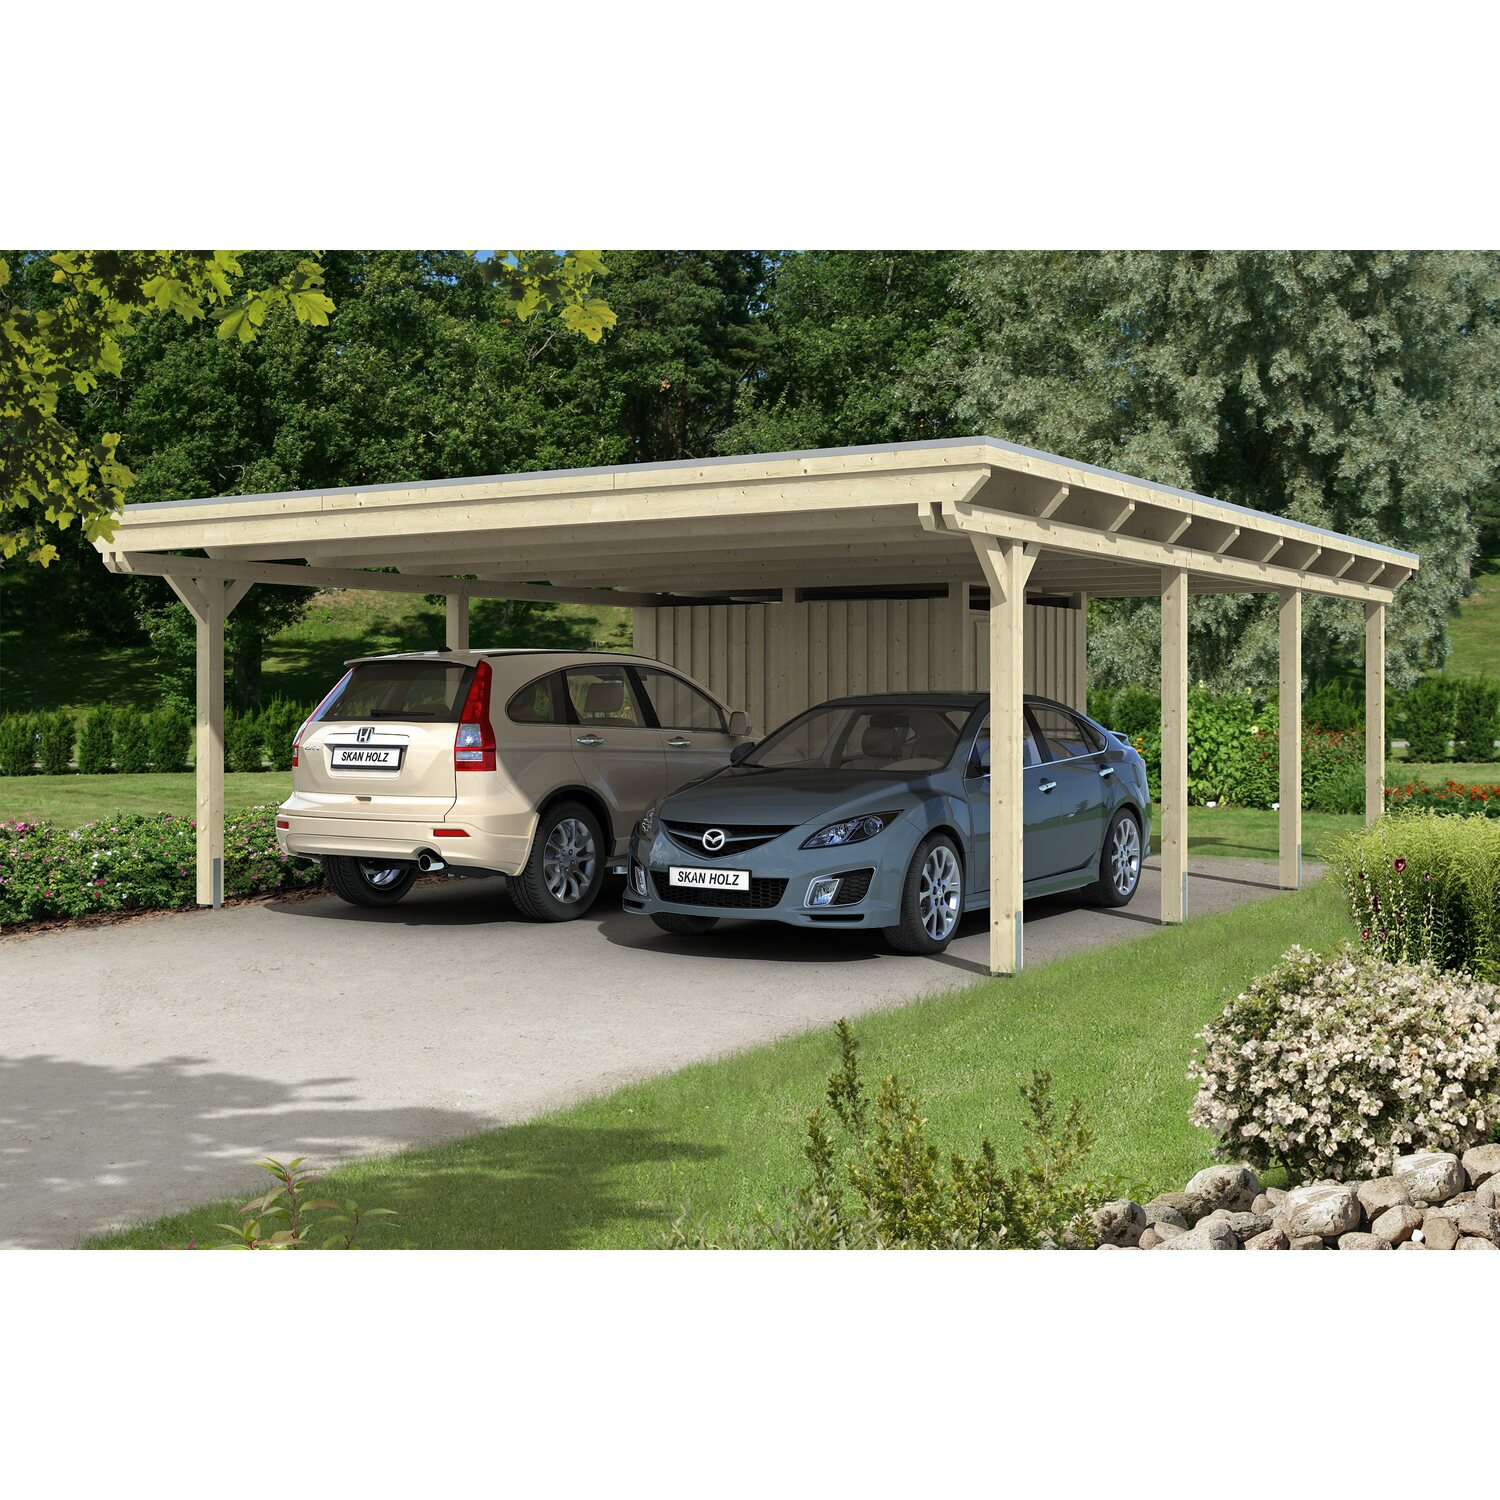 skan holz flachdach doppelcarport emsland 613 cm x 846 cm mit abstellraum kaufen bei obi. Black Bedroom Furniture Sets. Home Design Ideas